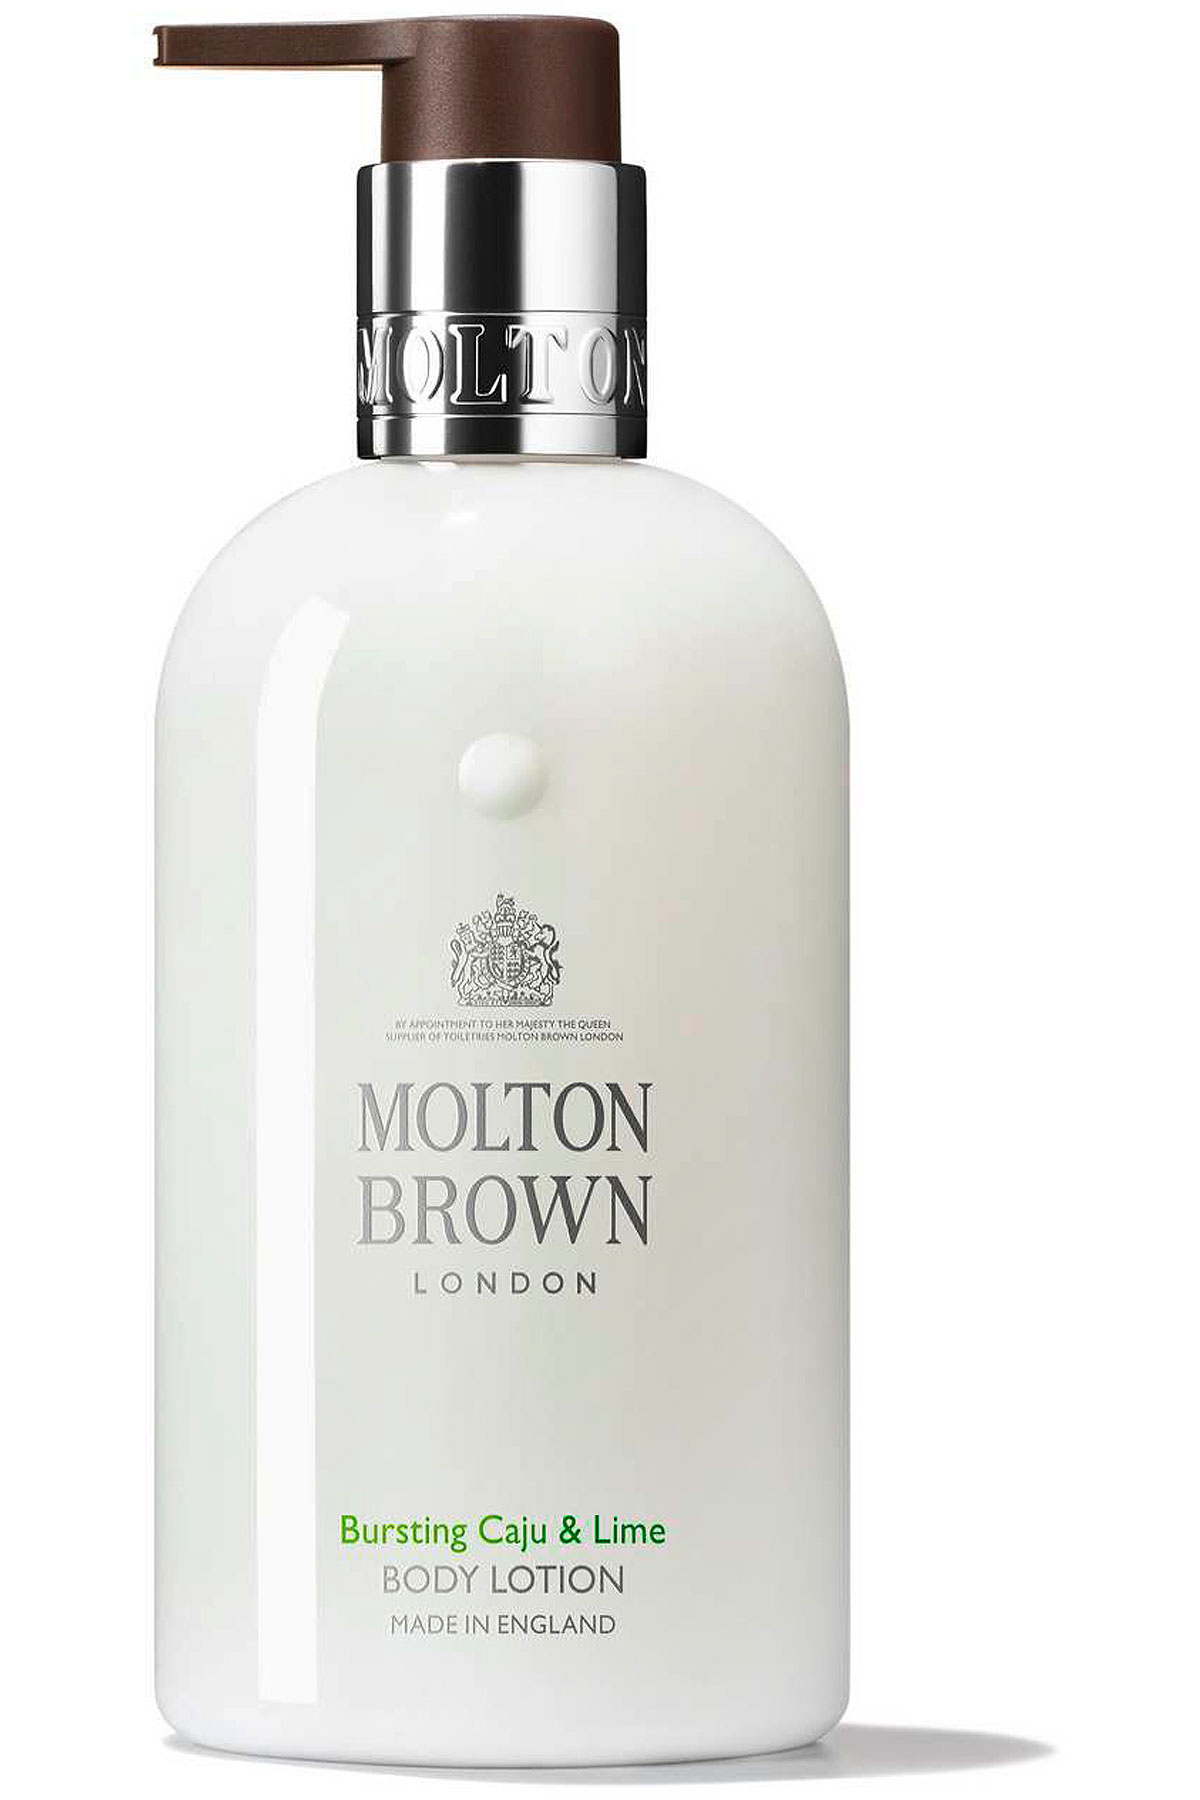 Molton Brown Beauty for Women, Bursting Caju & Lime - Body Lotion - 300 Ml, 2019, 300 ml